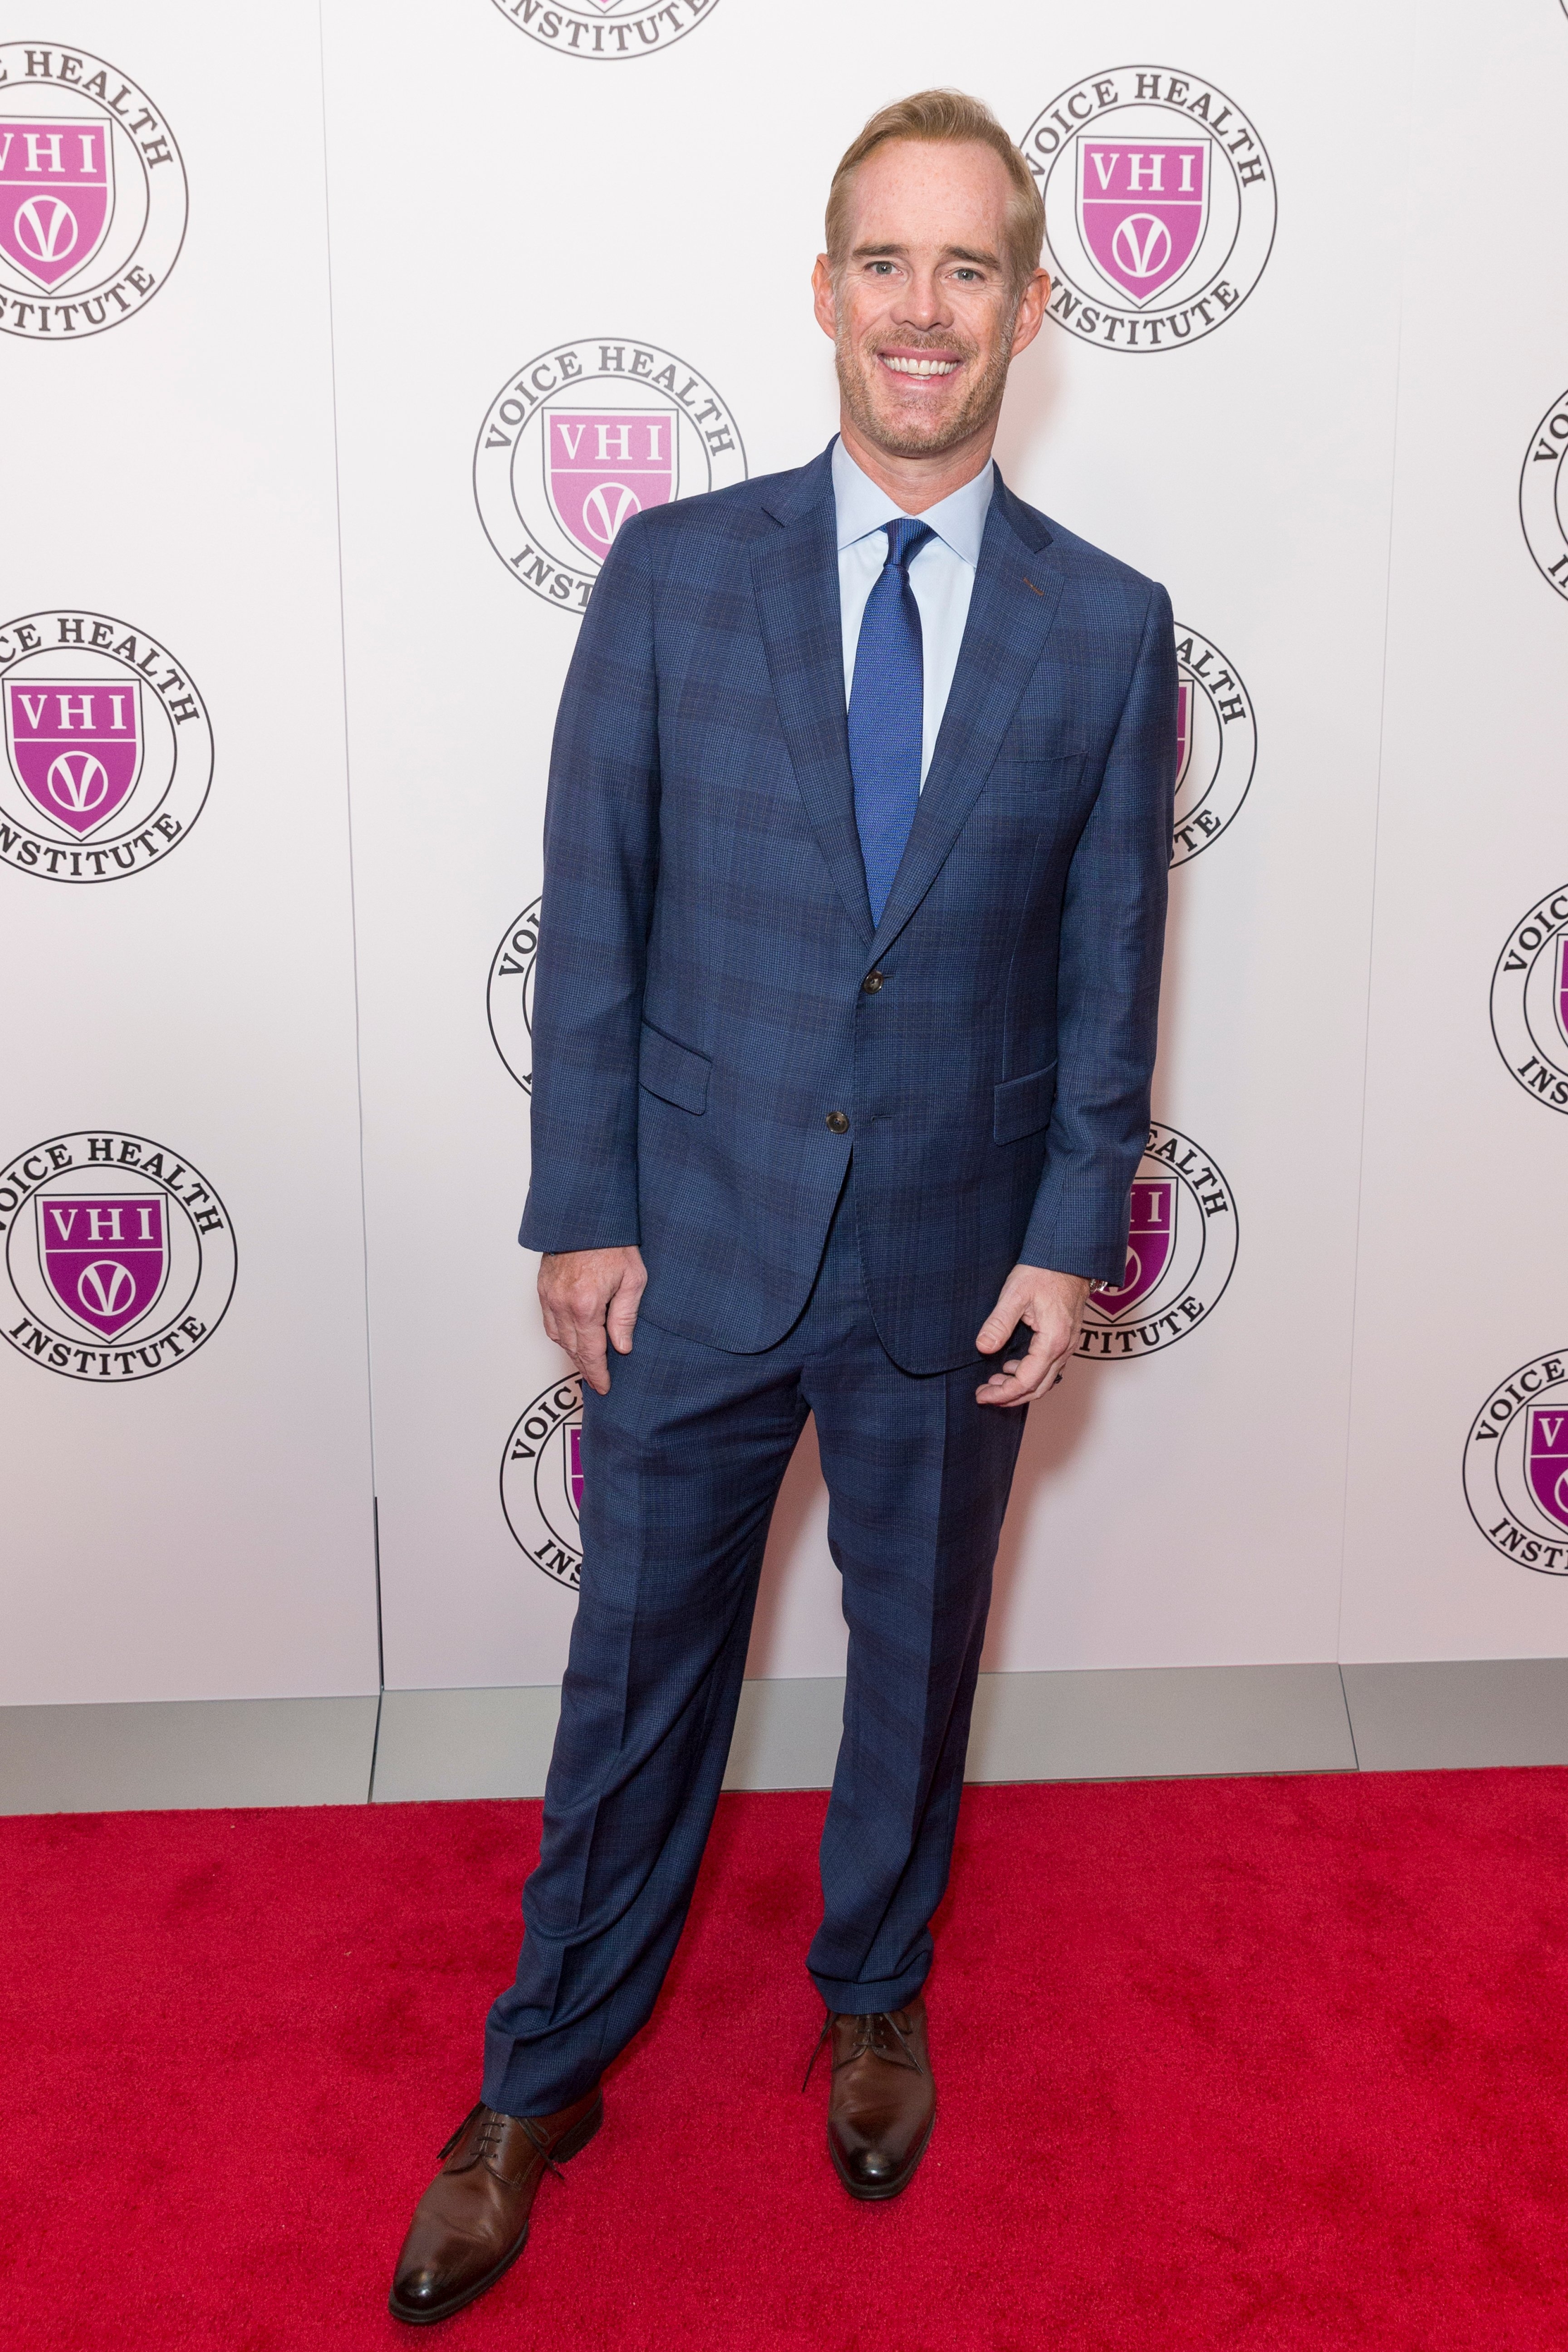 Joe Buck atthe Raise Your Voice concert to benefit the 15th anniversary of the Voice Health Institute fund at Alice Tully Hall on March 5, 2018, inNew York   Photo: Shutterstock/lev radin